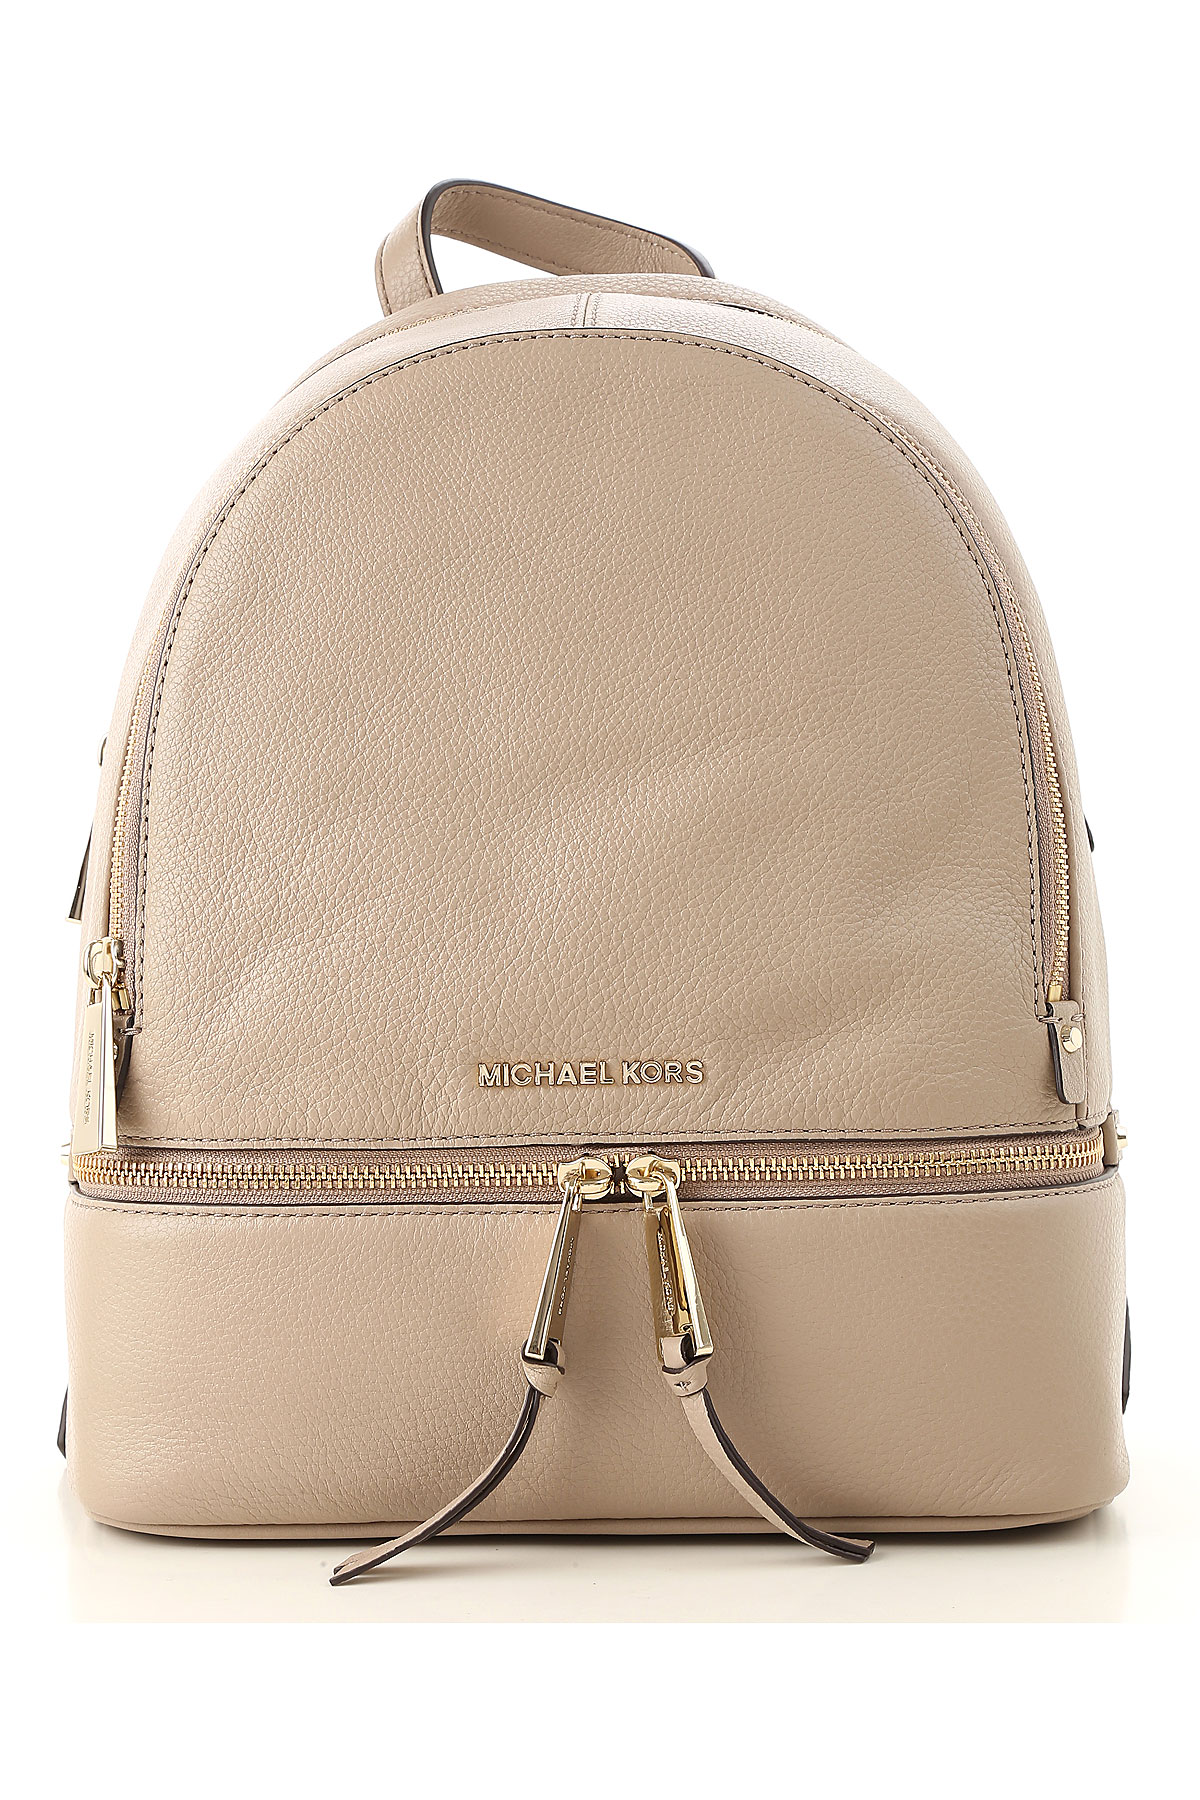 Image of Michael Kors Backpack for Women, Truffle, Leather, 2017